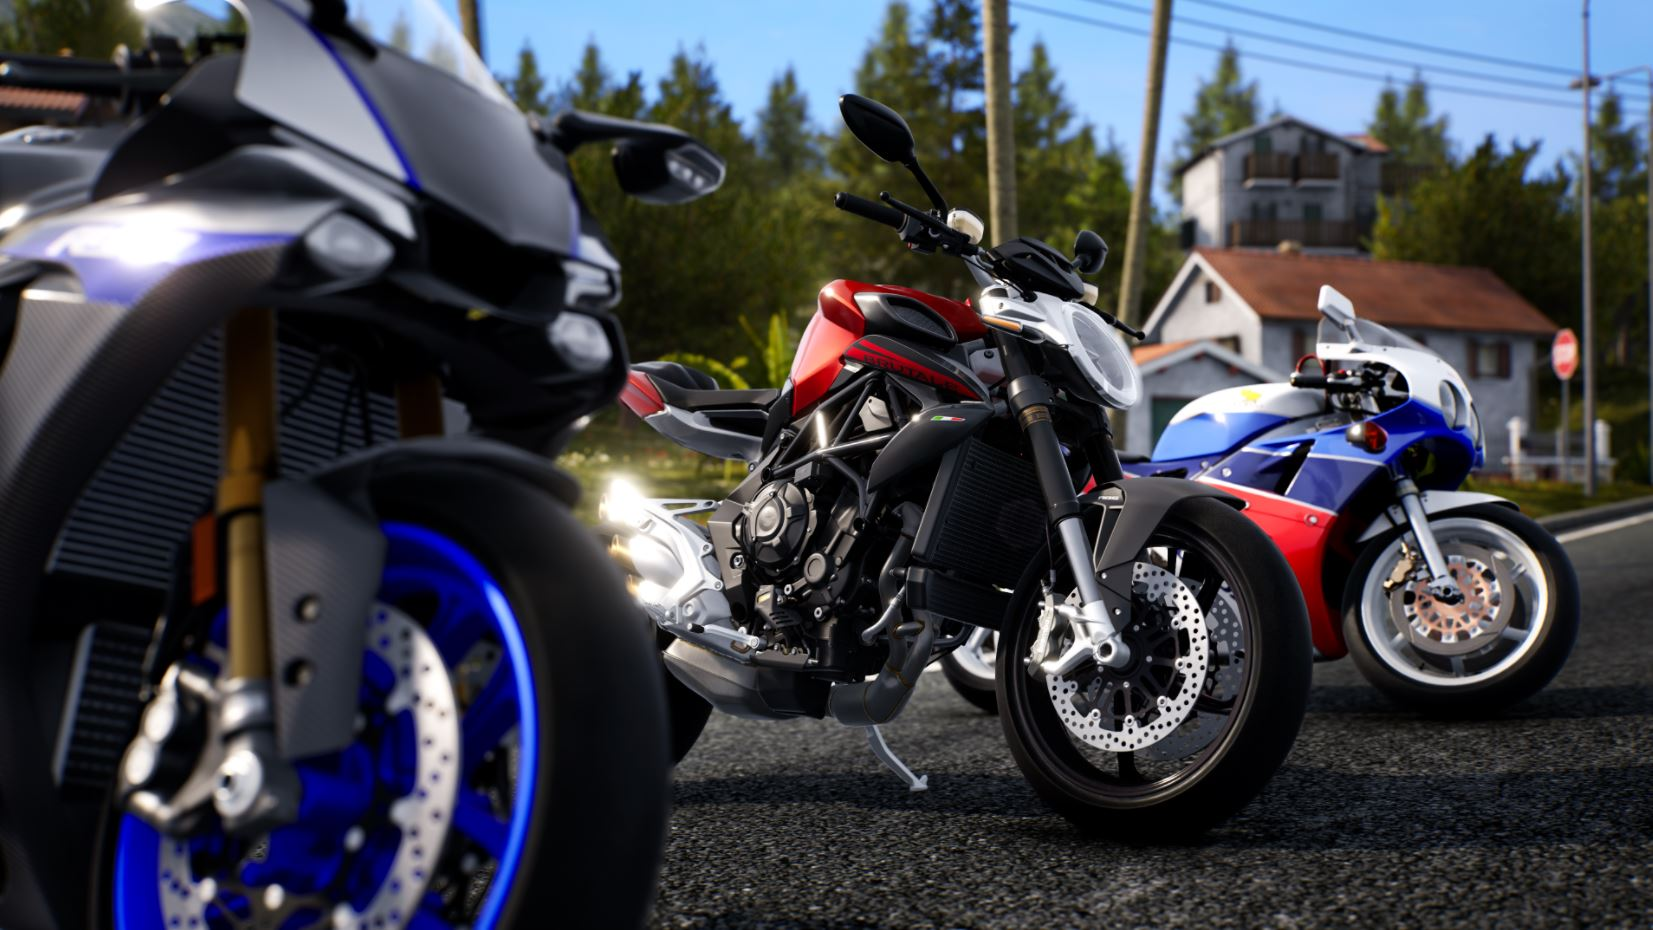 ride-4-review-ps5-impressive-ps5-visuals-help-make-up-for-gameplay-issues-1